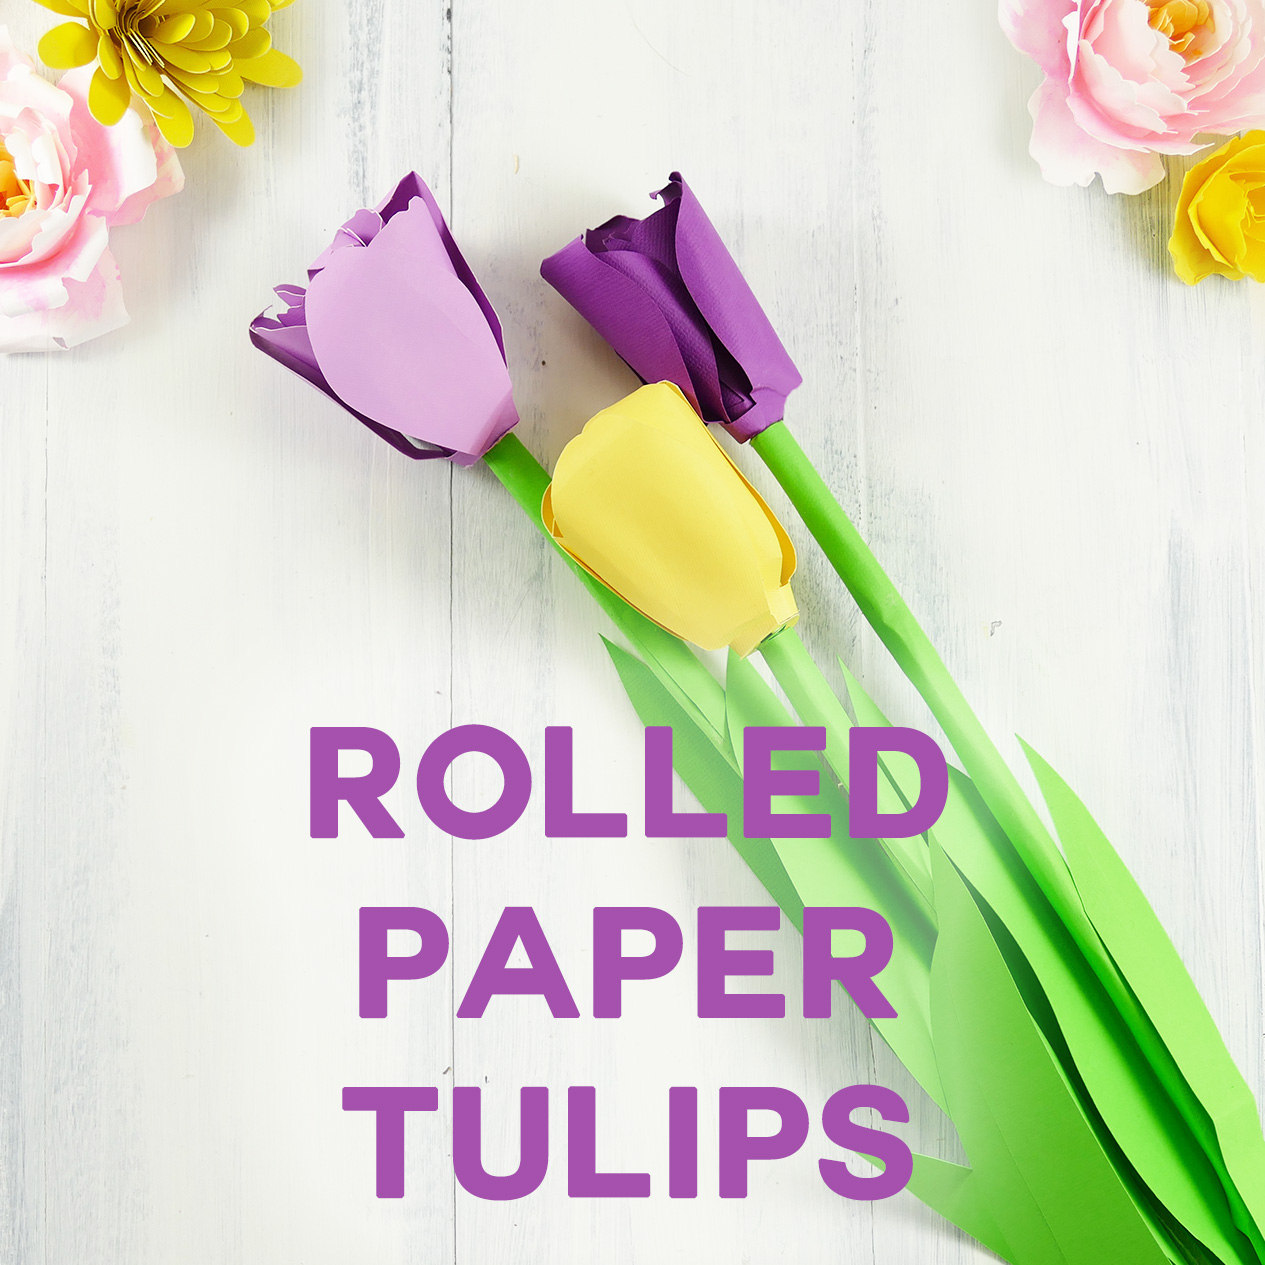 How To Make An Origami Tulip Make A Paper Tulip Bring Spring To Your Home Jennifer Maker